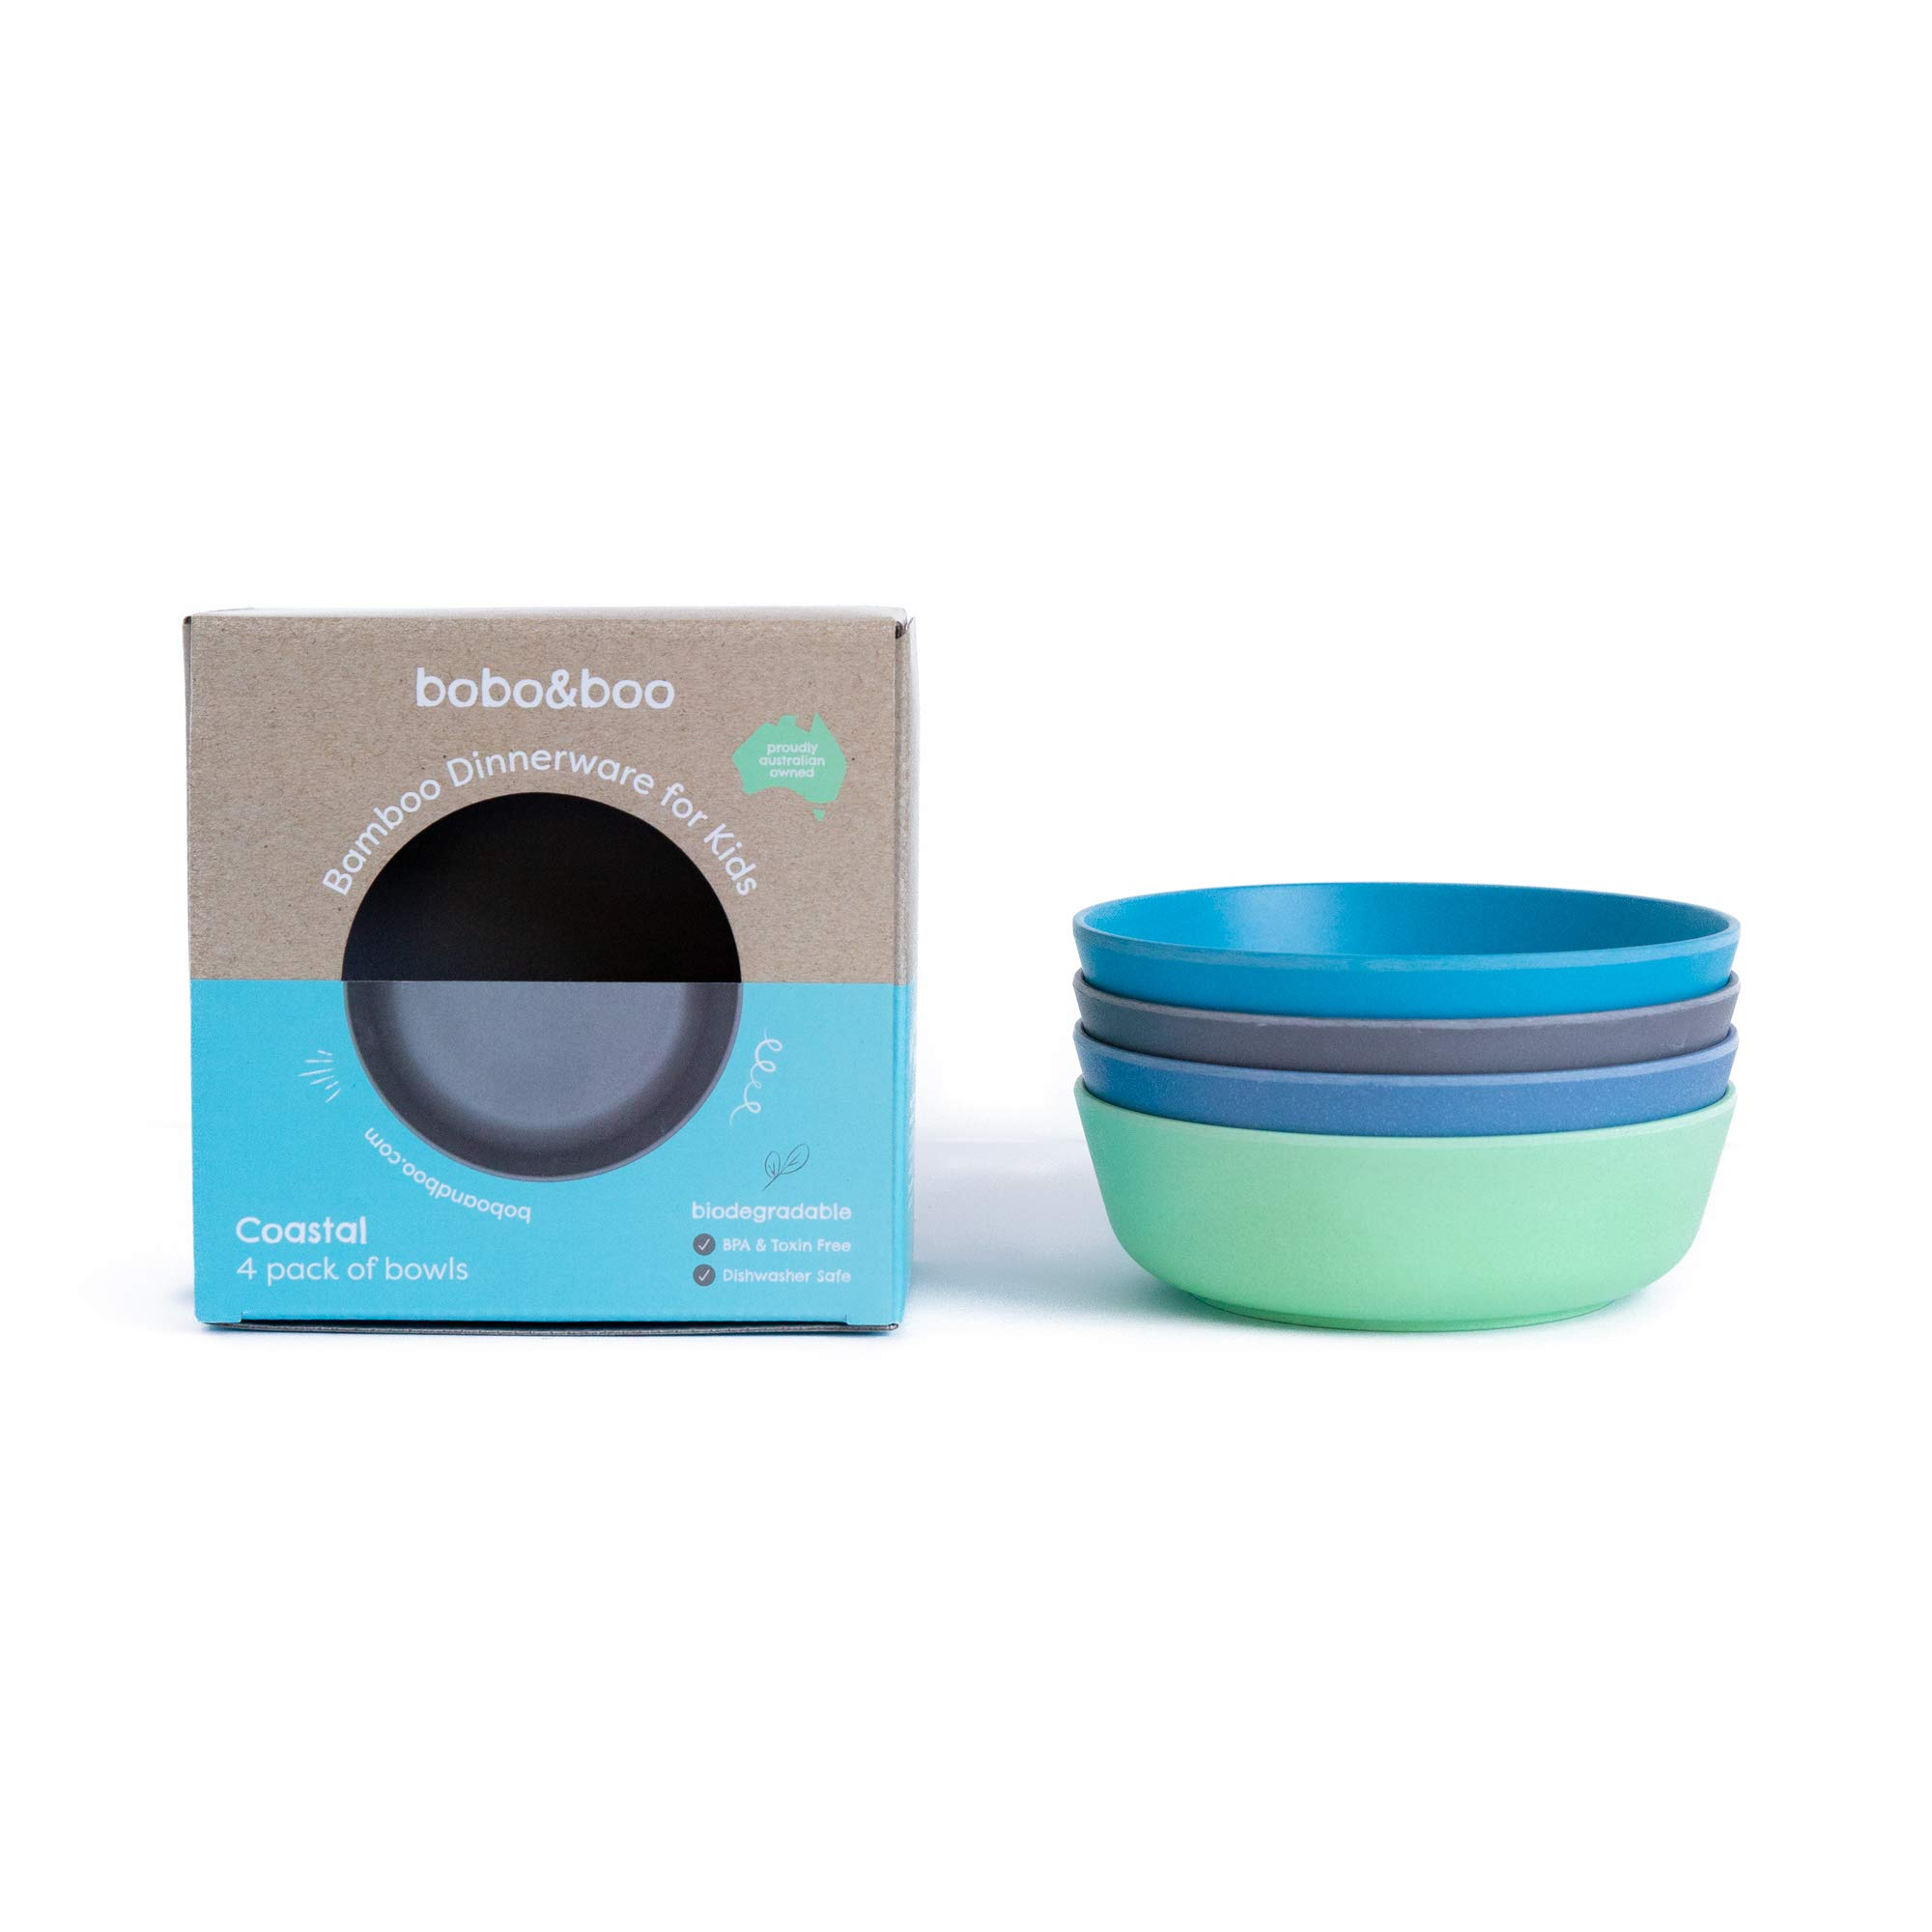 Bobo&Boo Bamboo Kids Bowls, Set of 4 Eco Friendly Toddler Bowls :: Non Toxic & Kid Safe Dishes for Cereal & Soup :: Mix and Match :: Great Gift for Baby Showers & Birthdays, Coastal by Bobo&boo